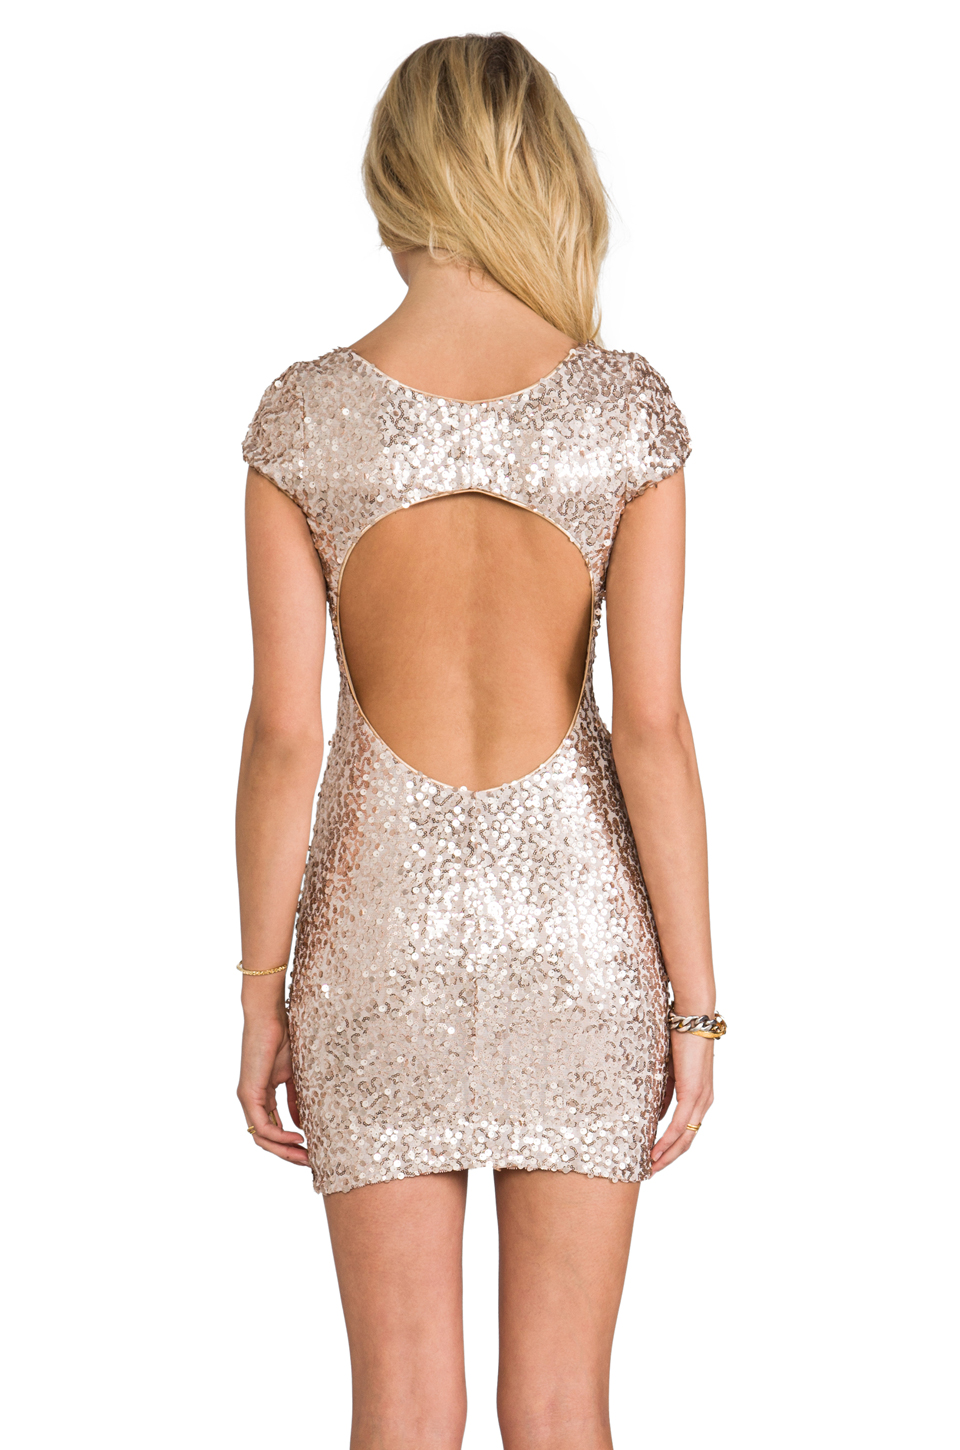 DRESS THE POPULATION Gabriella Dress in Champagne